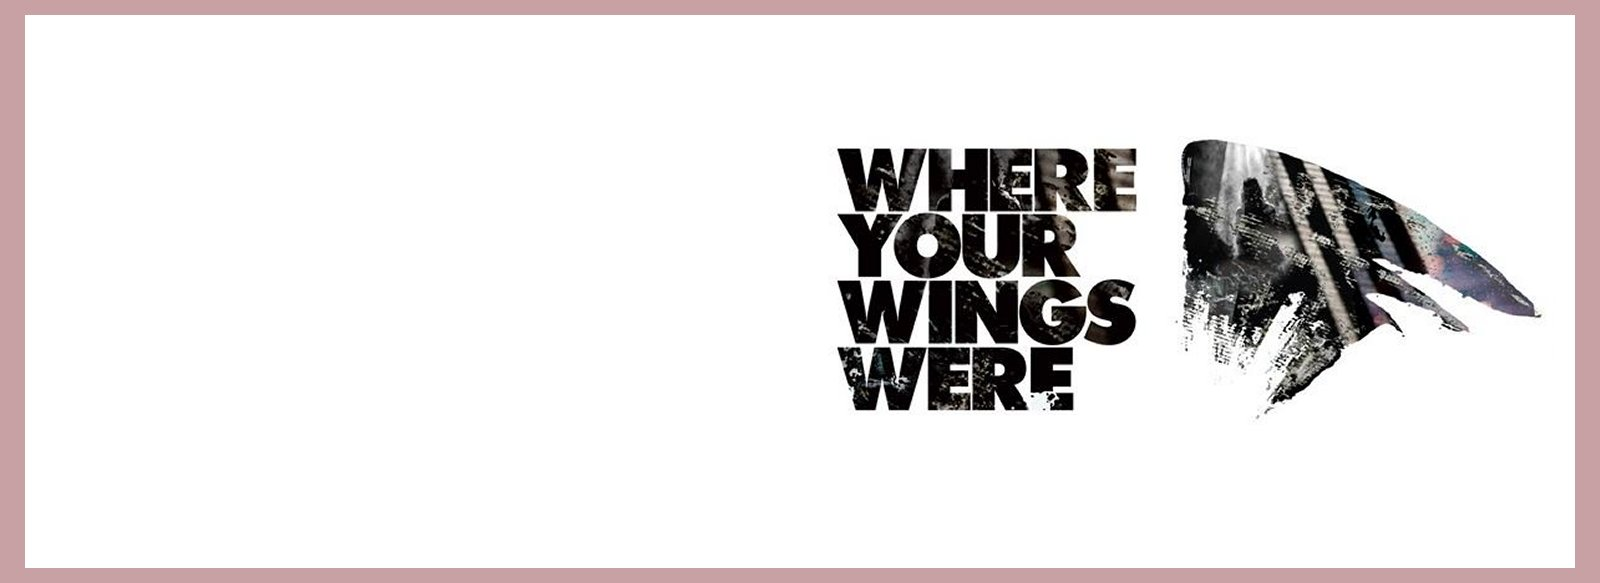 Where Your Wings Were